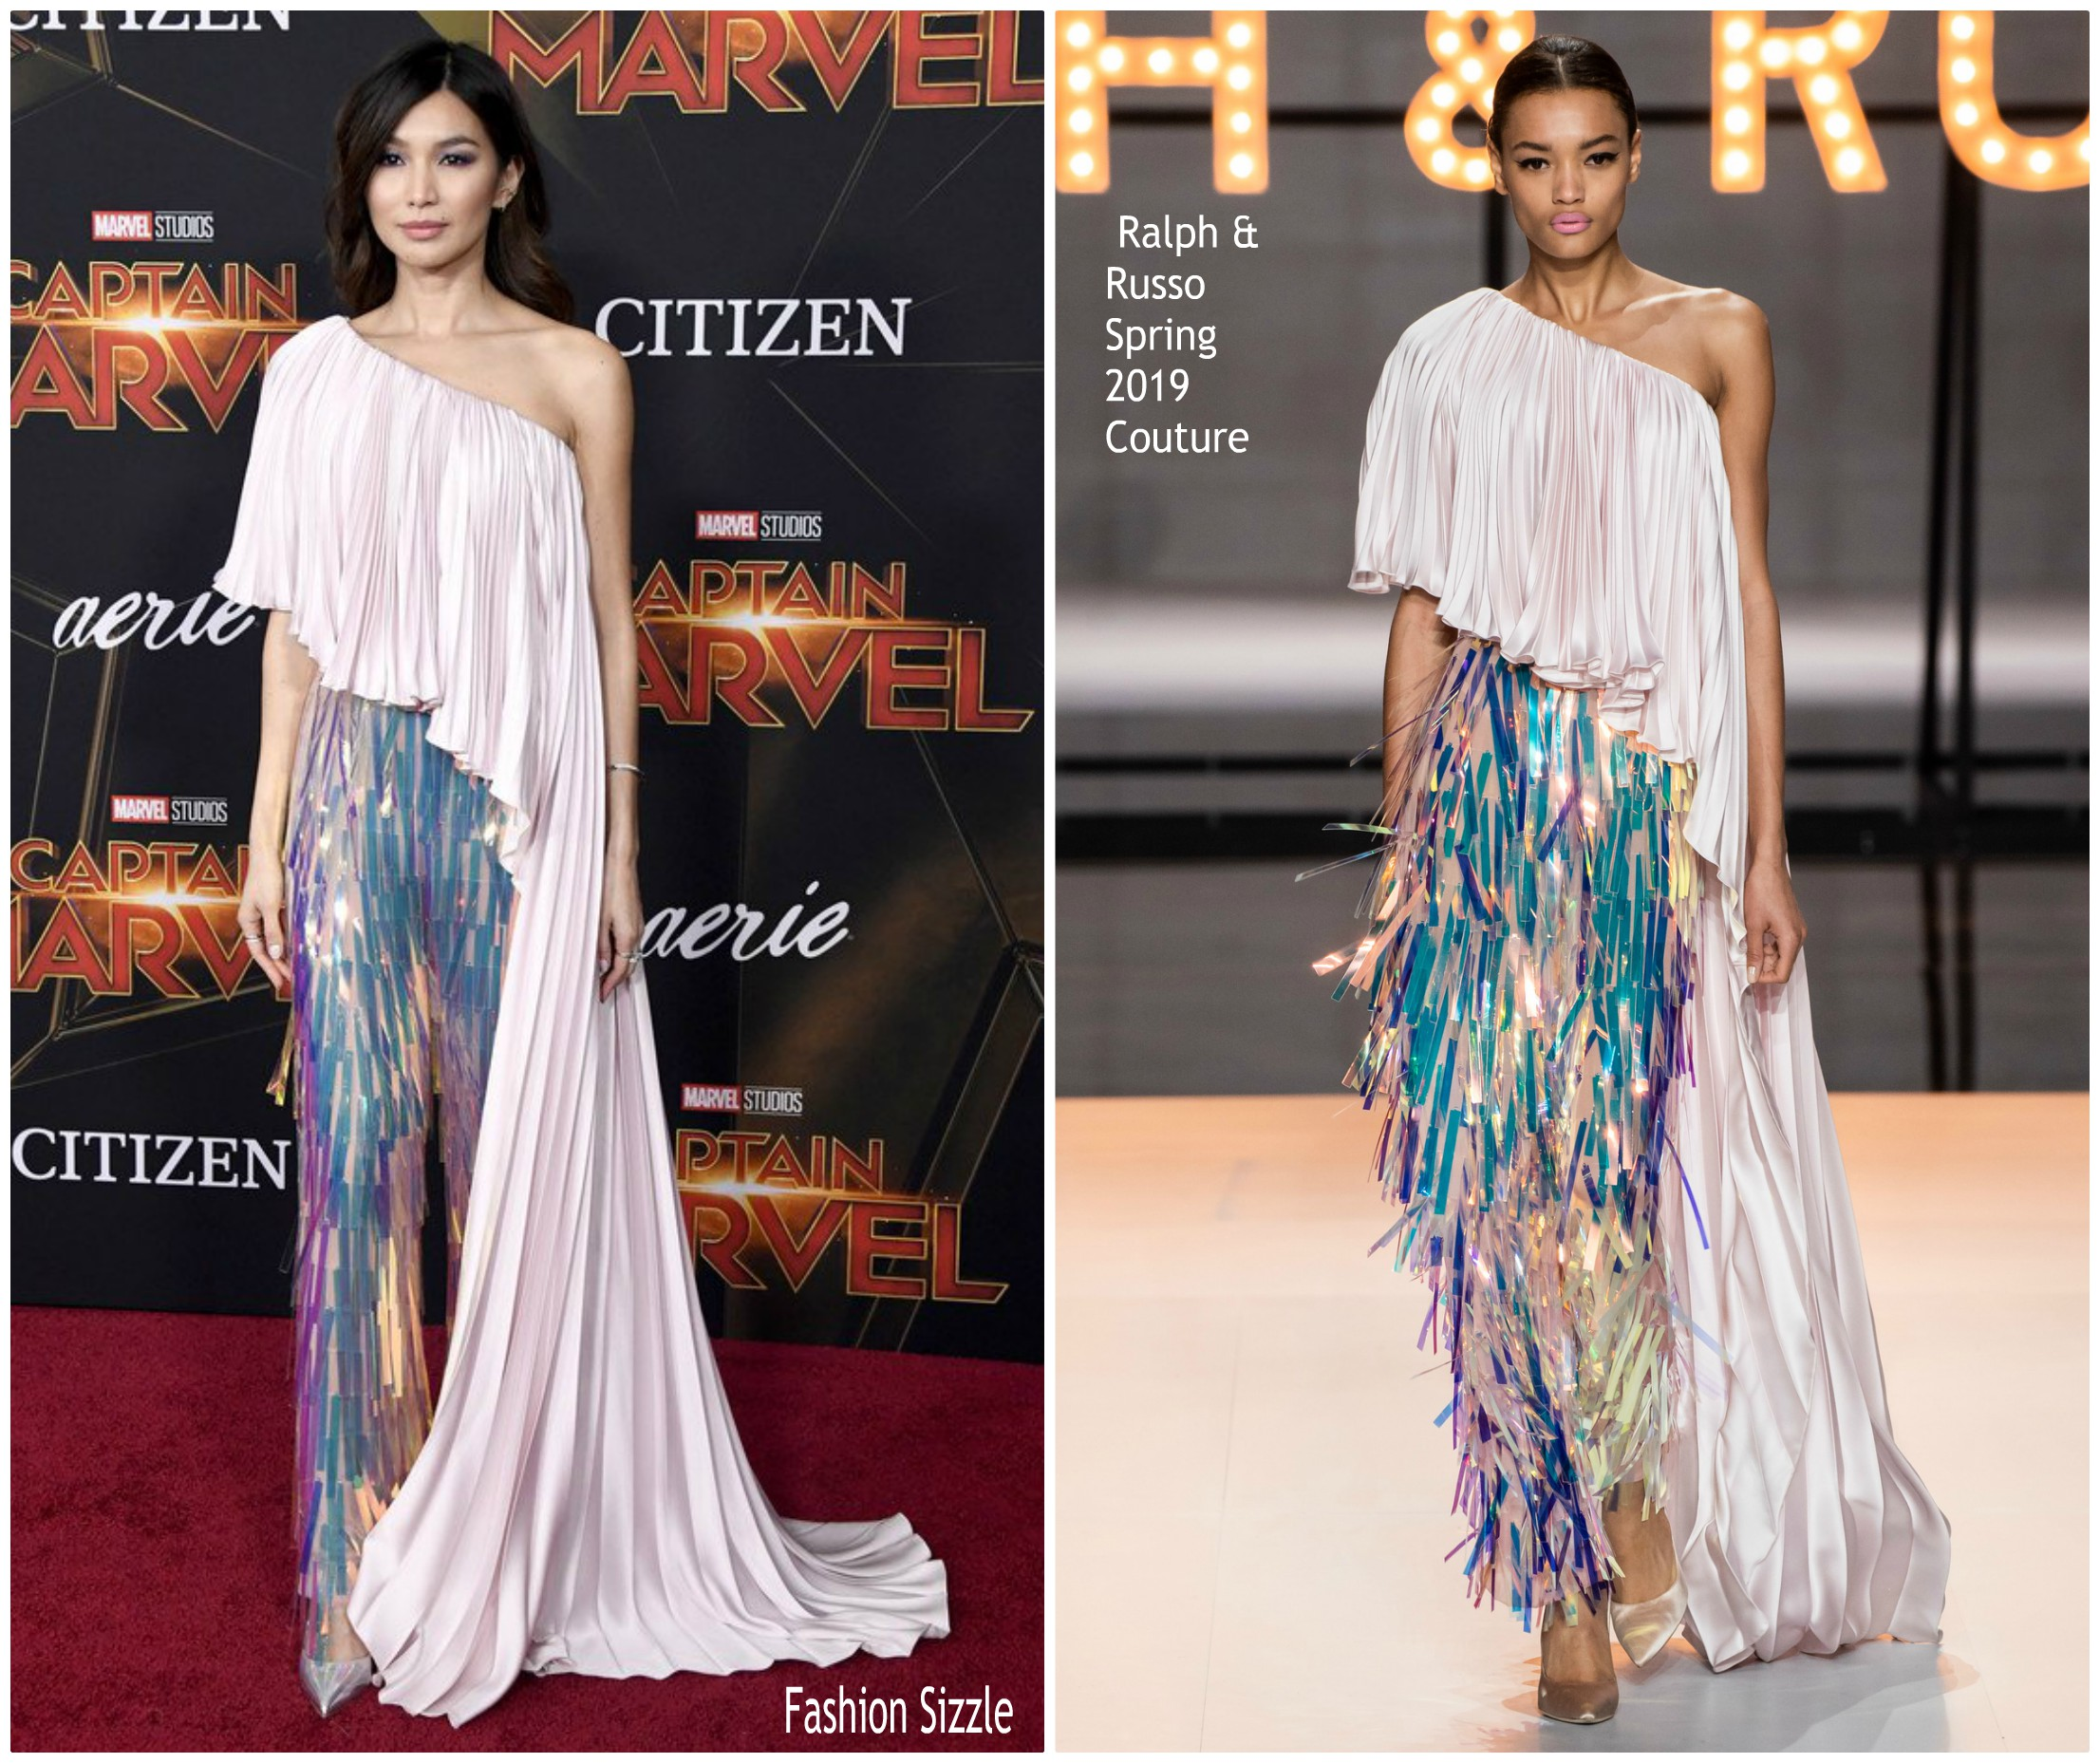 gemma-chan-in-ralph-russo-couture-captain-marvel-la-premiere